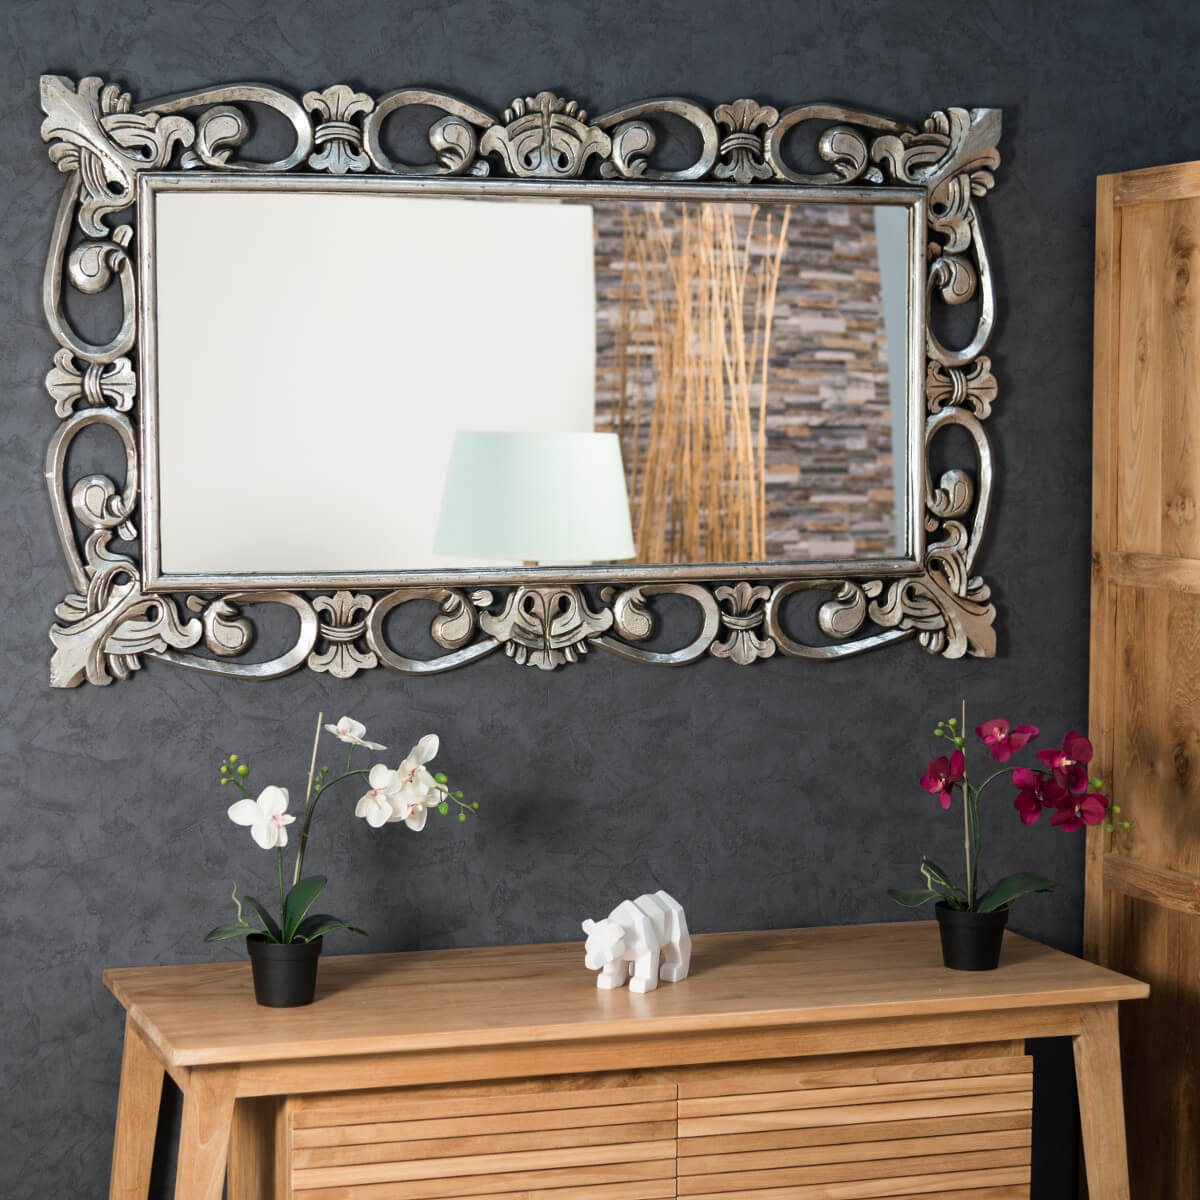 Miroir cordoue en bois patin argent 140 x 80 for Grand miroir salon